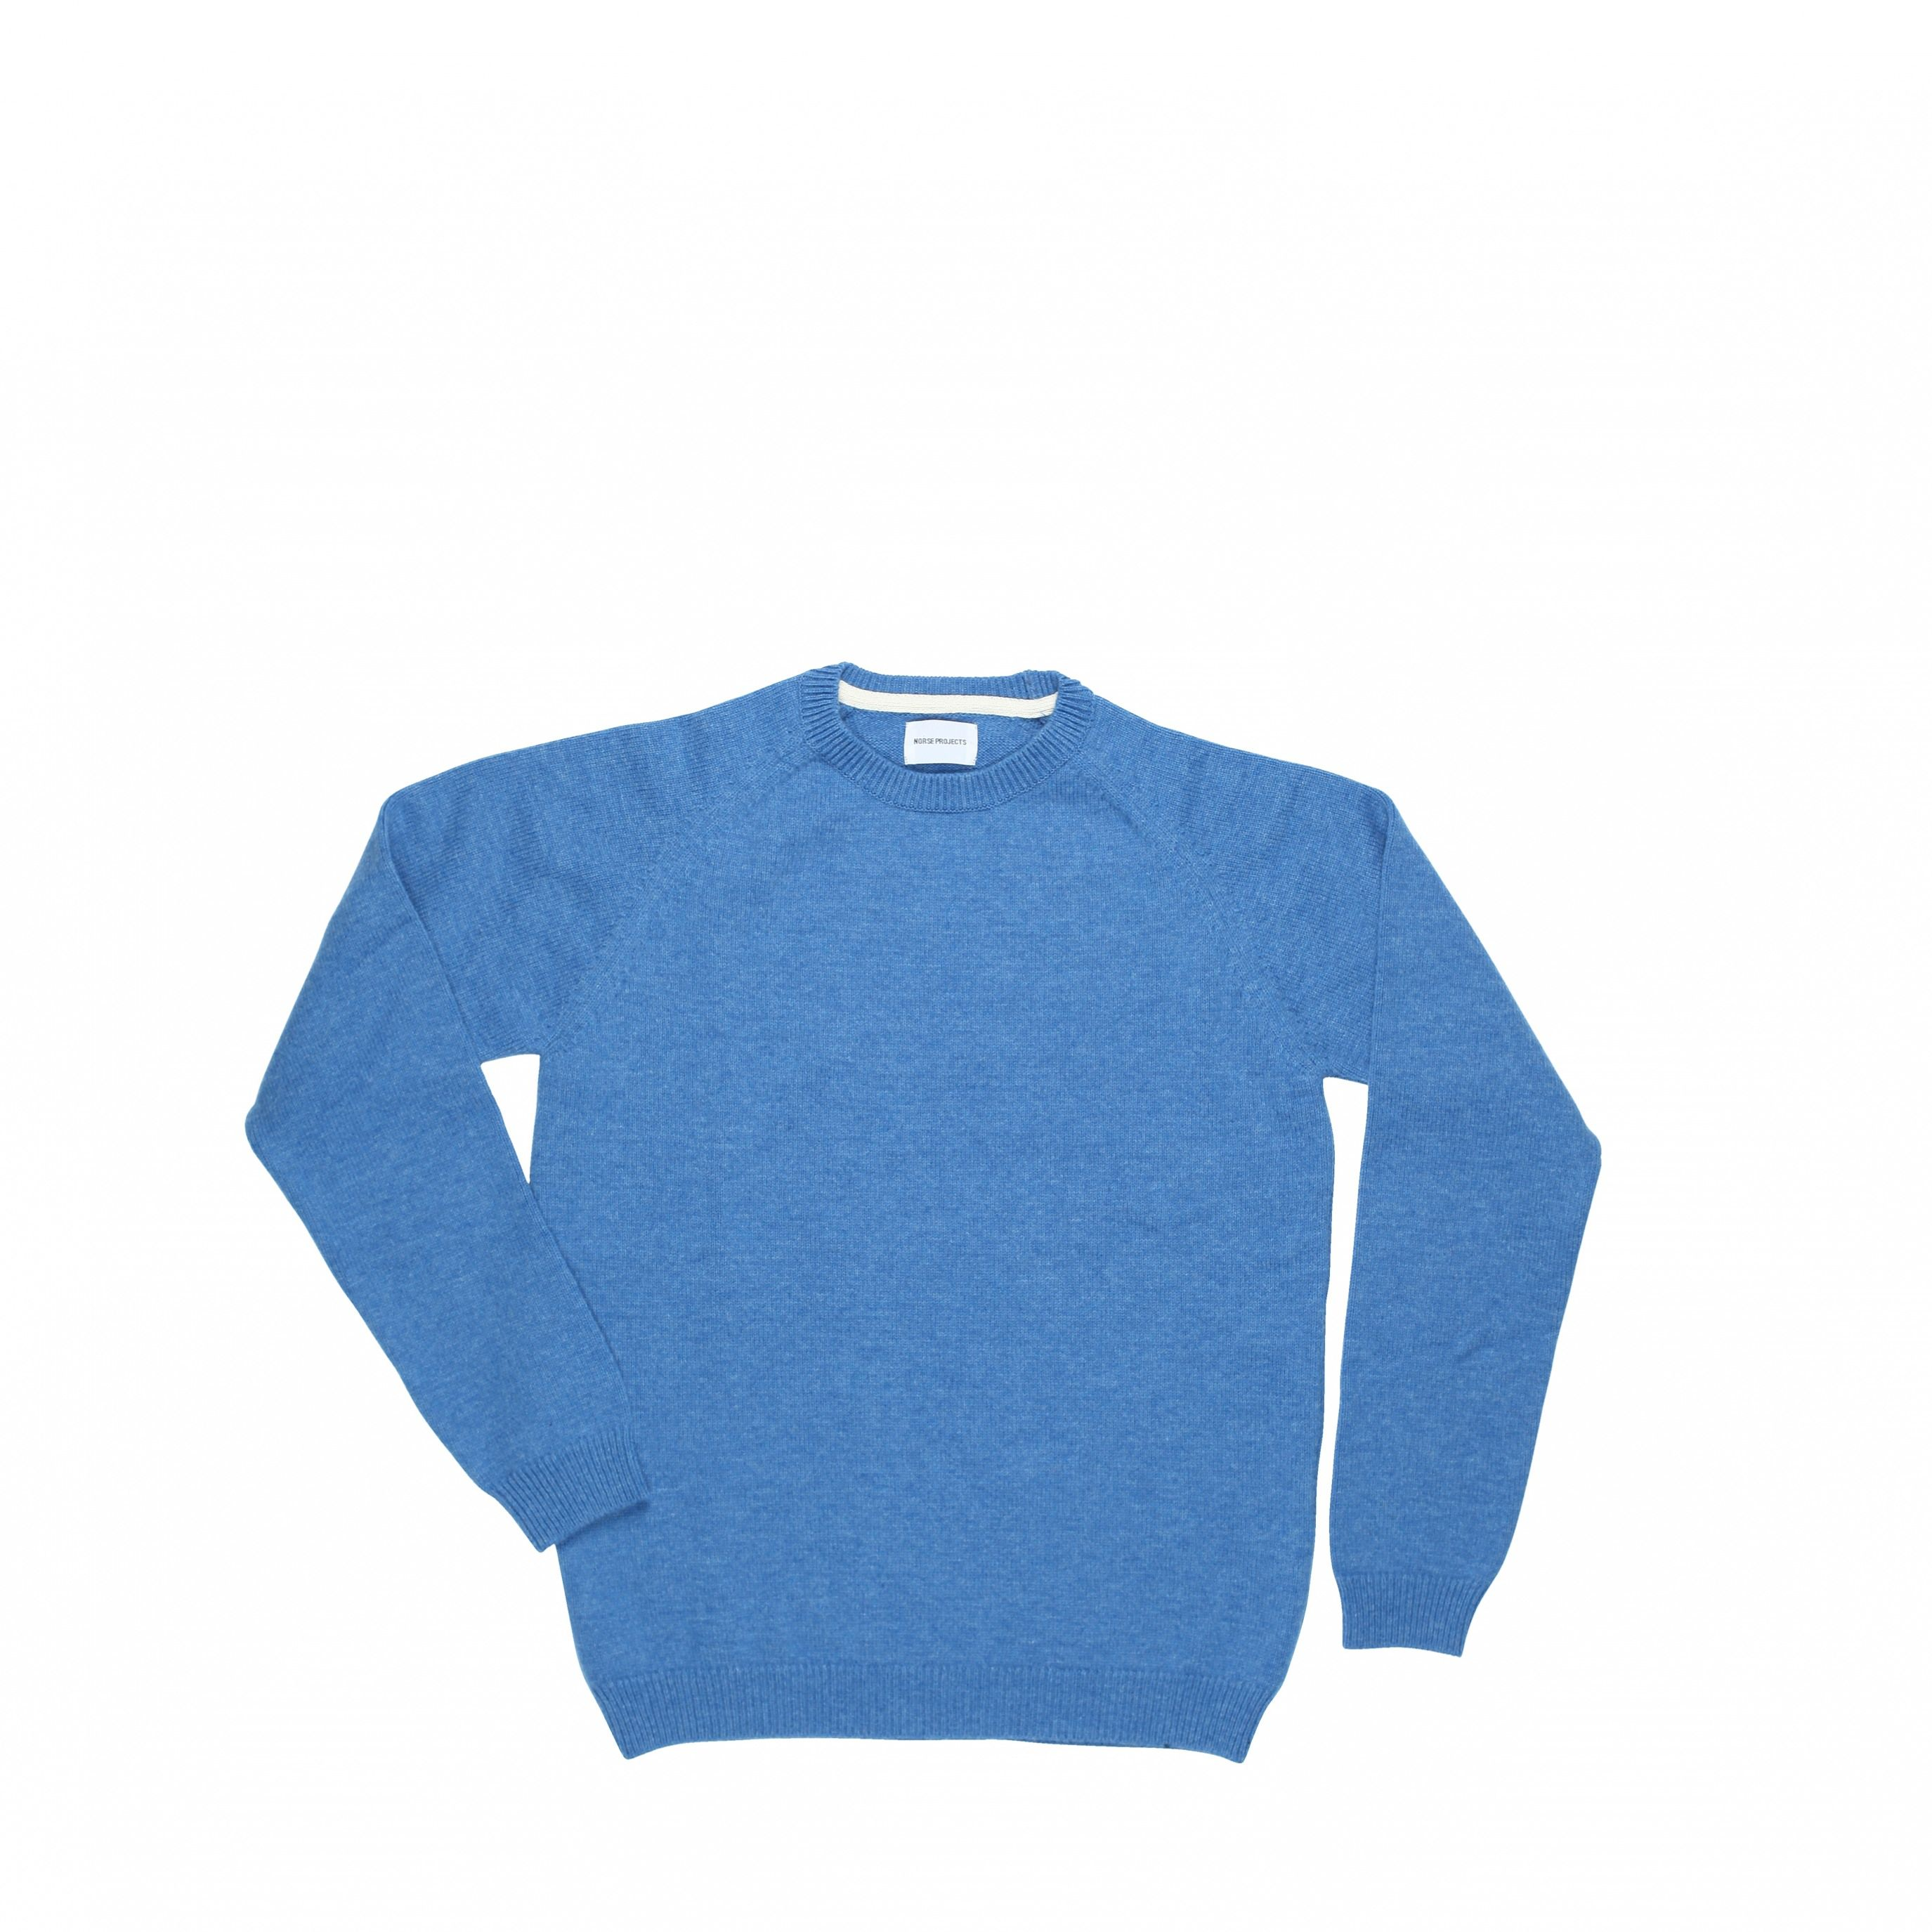 Classic crewneck sweater with raglan sleeves. Made of 10 gg 100% Merino Lambswool from UK. Made in Europe. - Norse Projects